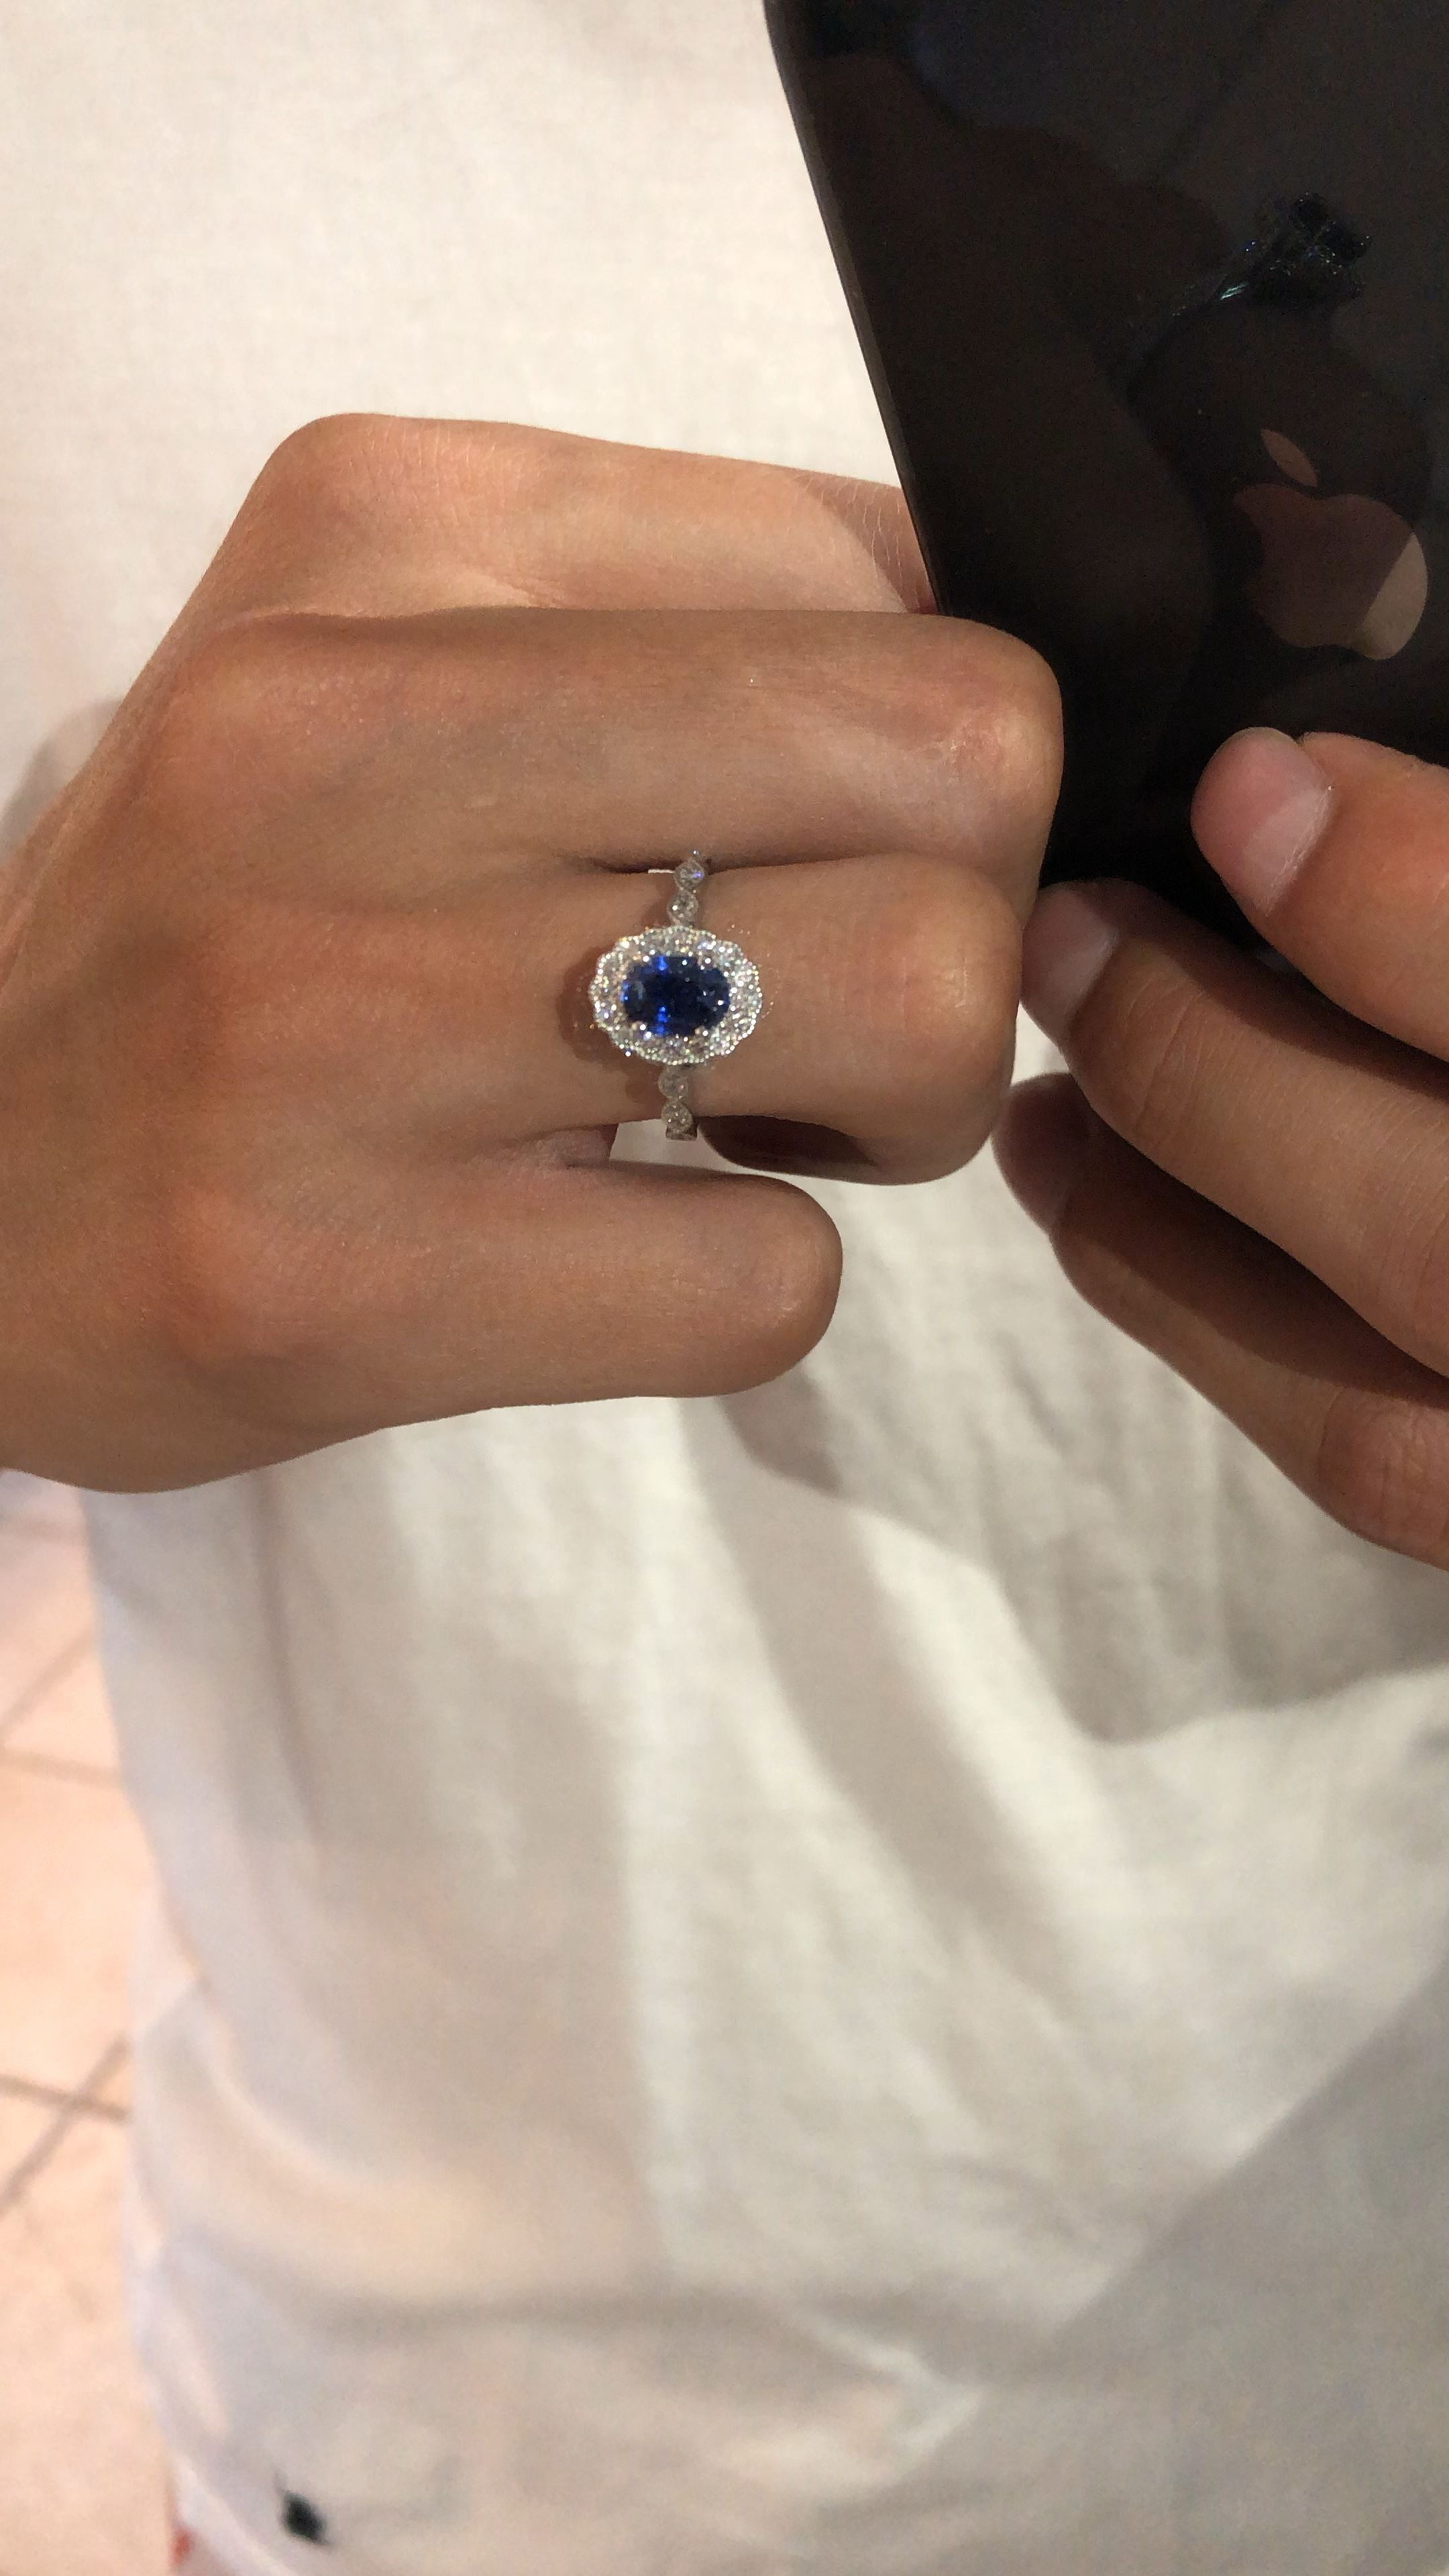 1 Carat Oval Blue Sapphire Diamond Scalloped Halo Engagement Ring Blue Carat Diamond In 2020 Blue Sapphire Rings Engagement Rings Sapphire Womens Rings Gemstone